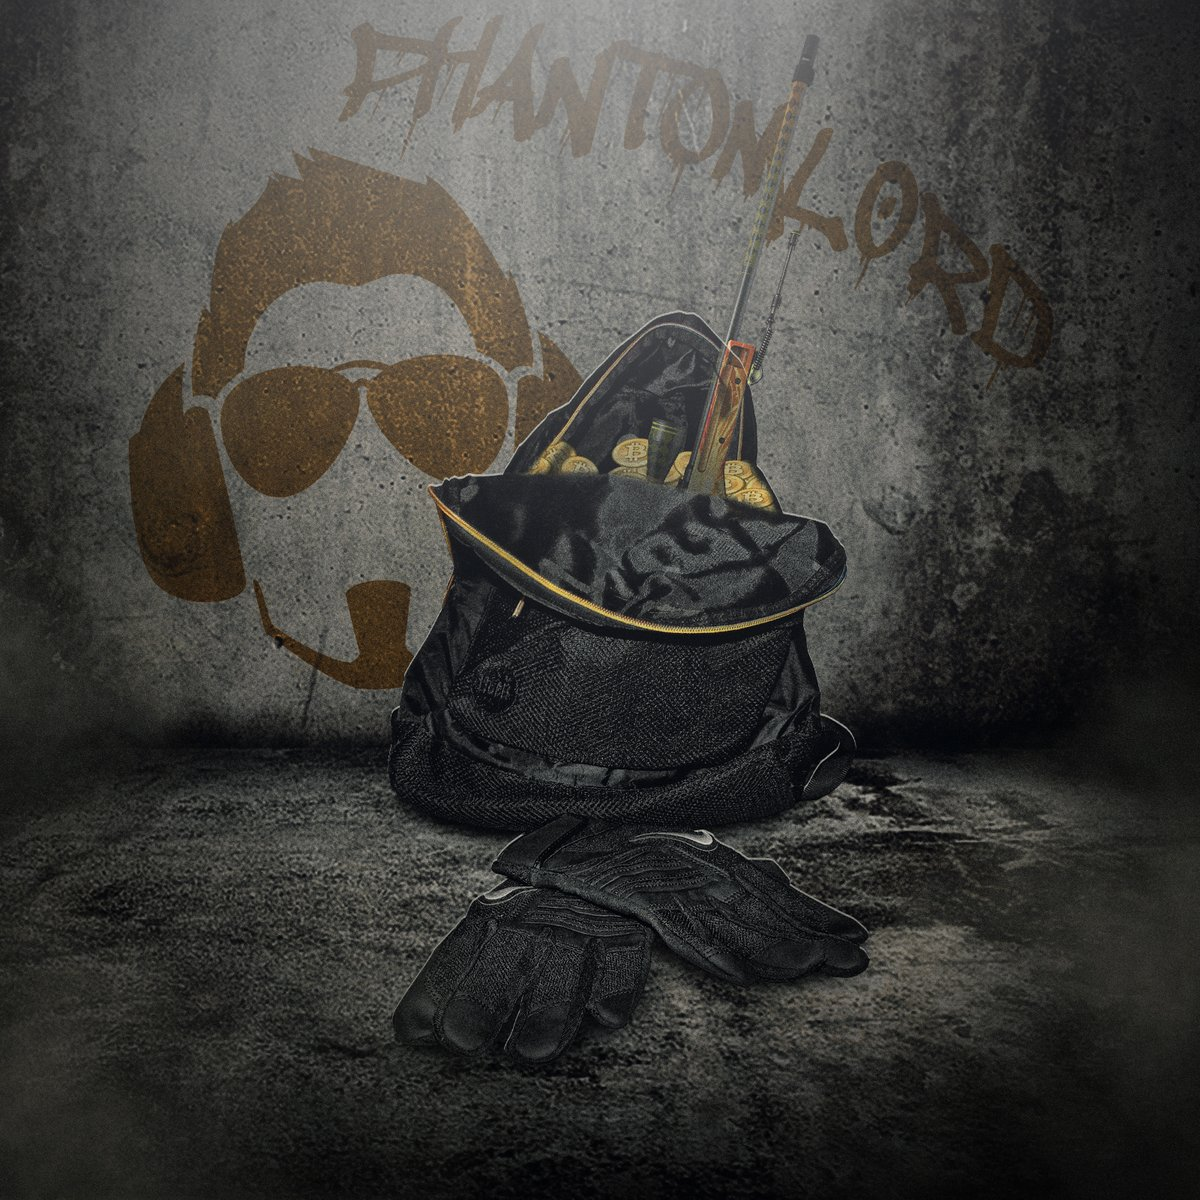 Phantomlord Twitch